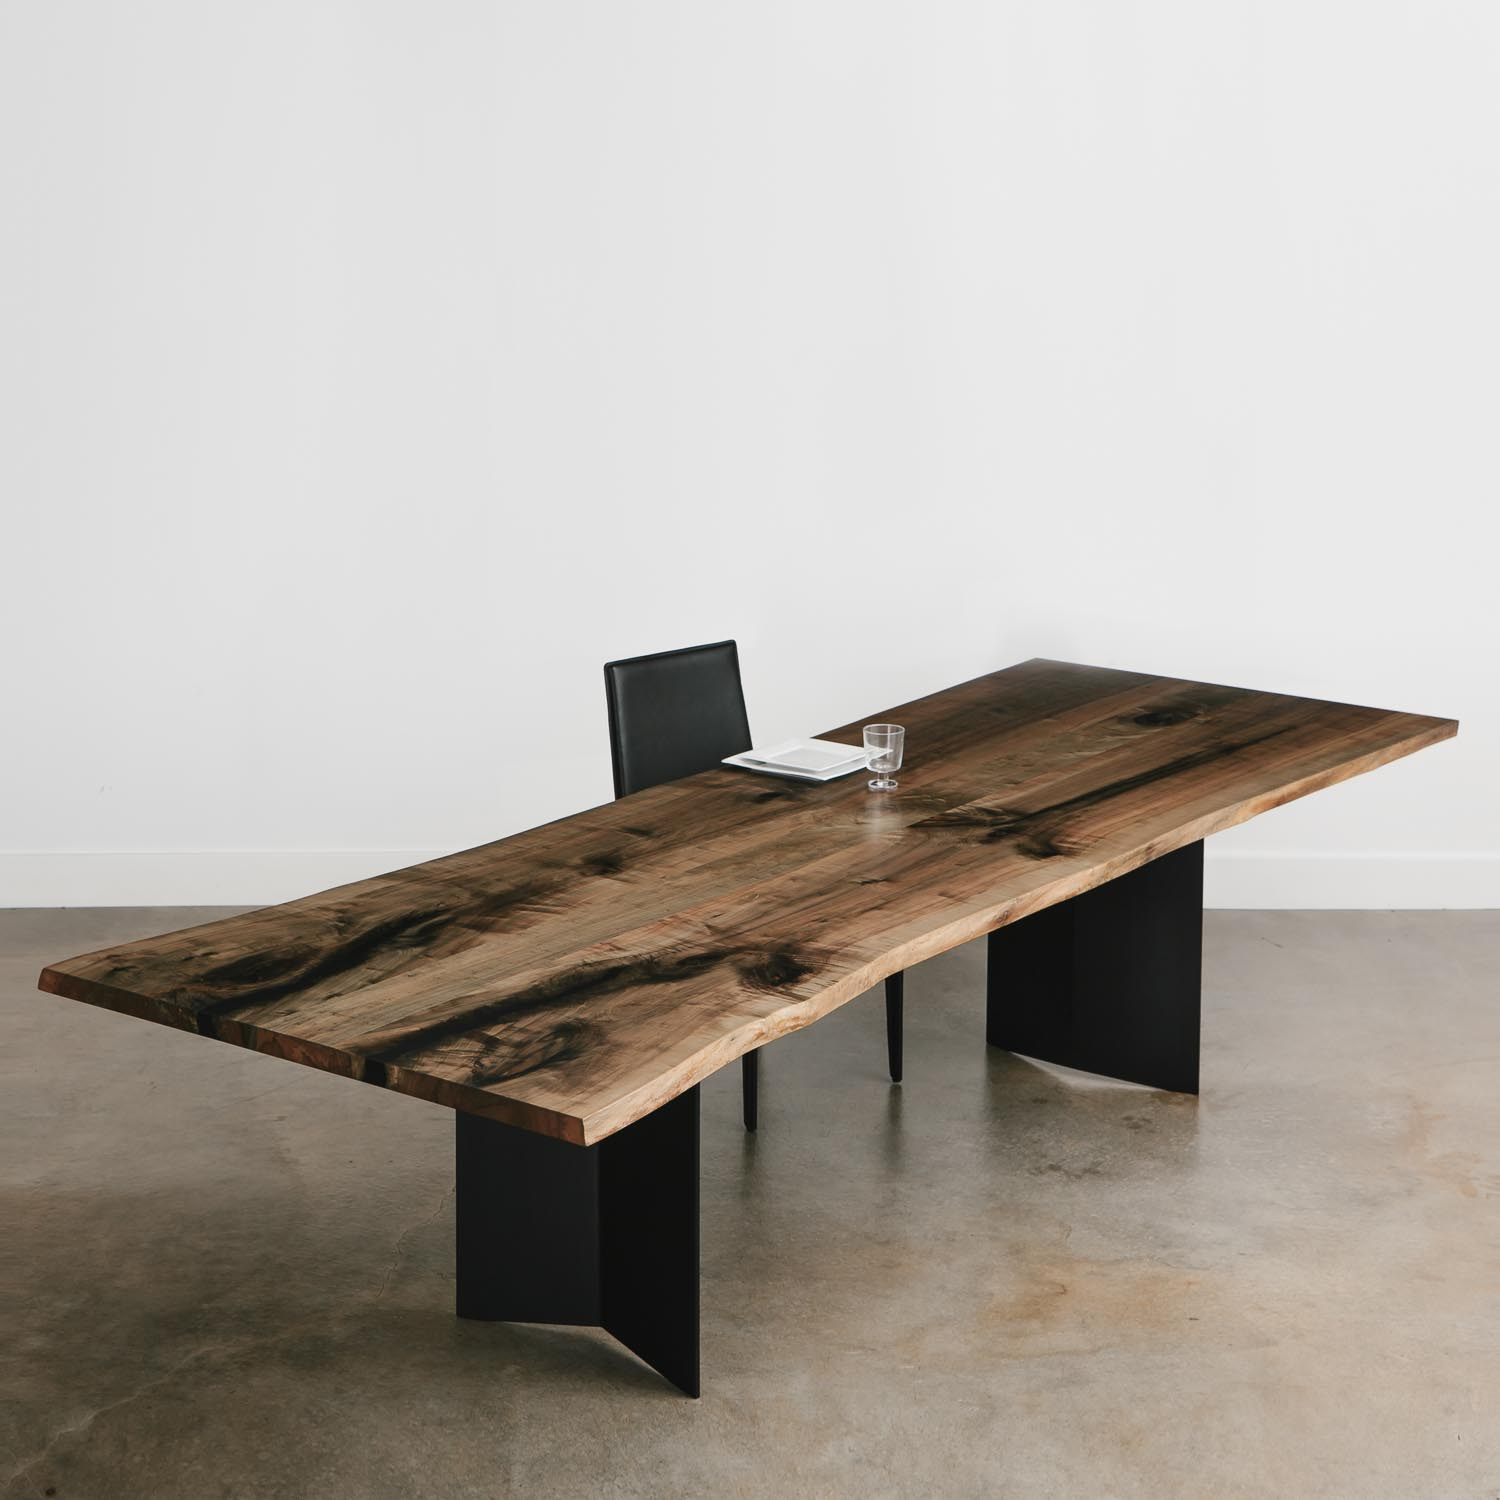 Extra Large Dining Room Table: 10 Foot Extra Large Live Edge Wood Dining Room Table